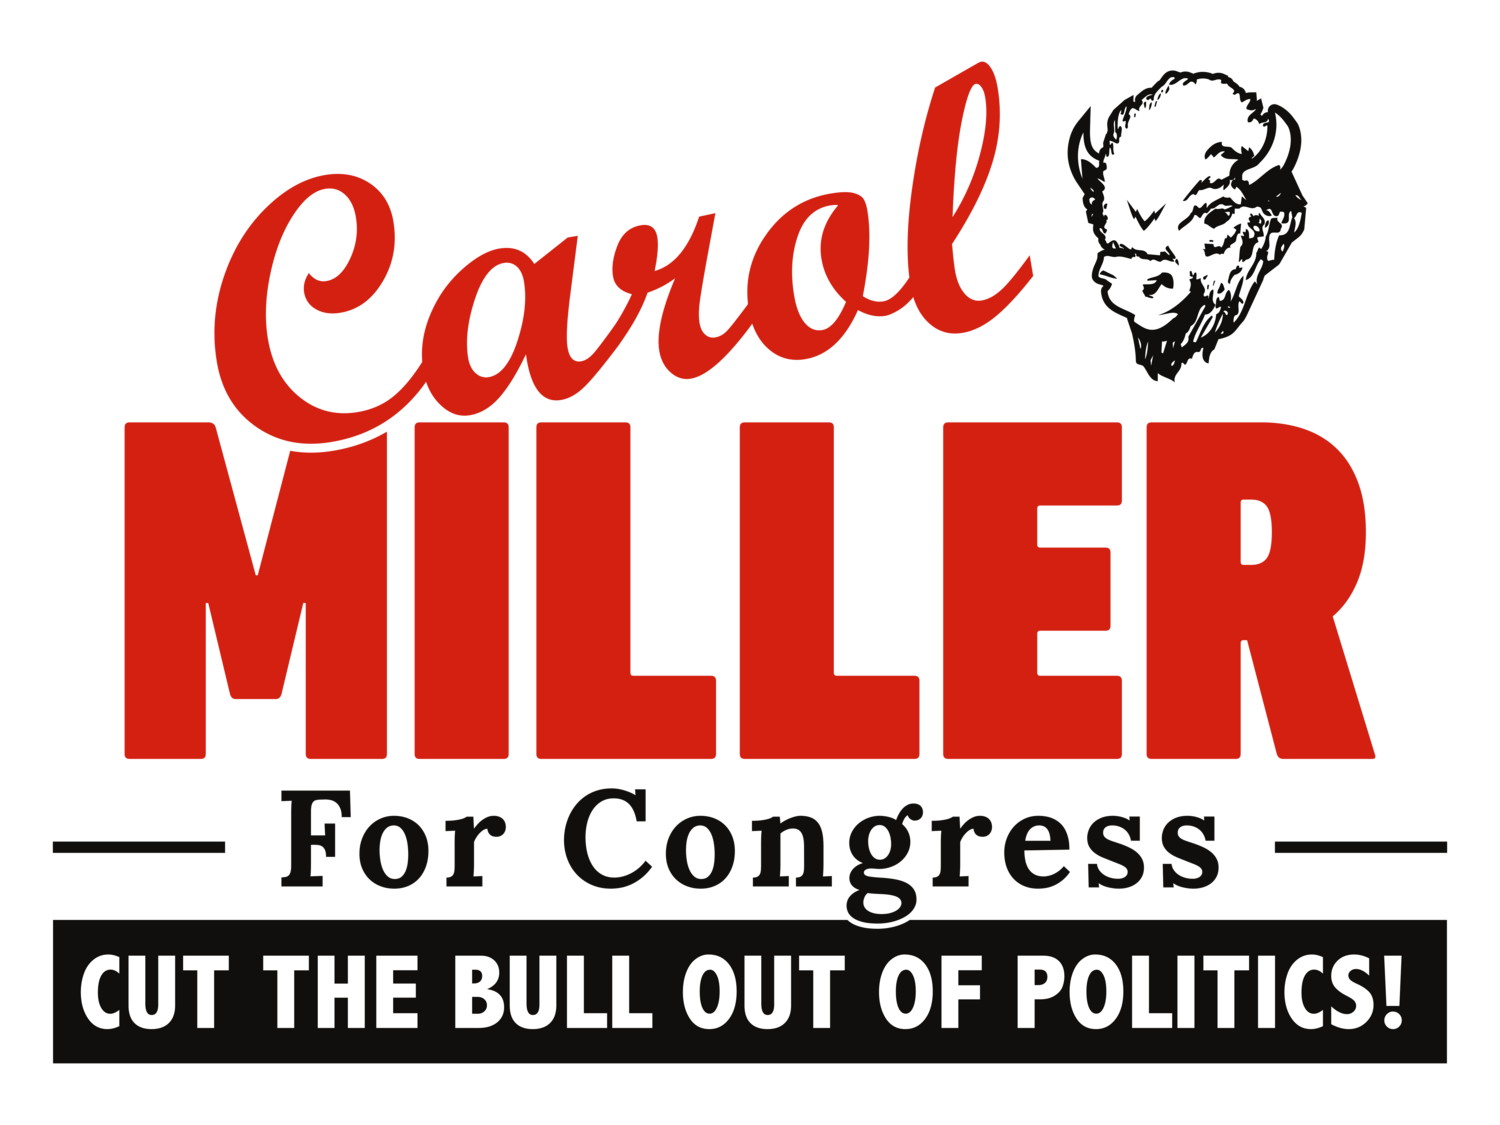 Carol Miller for Congress